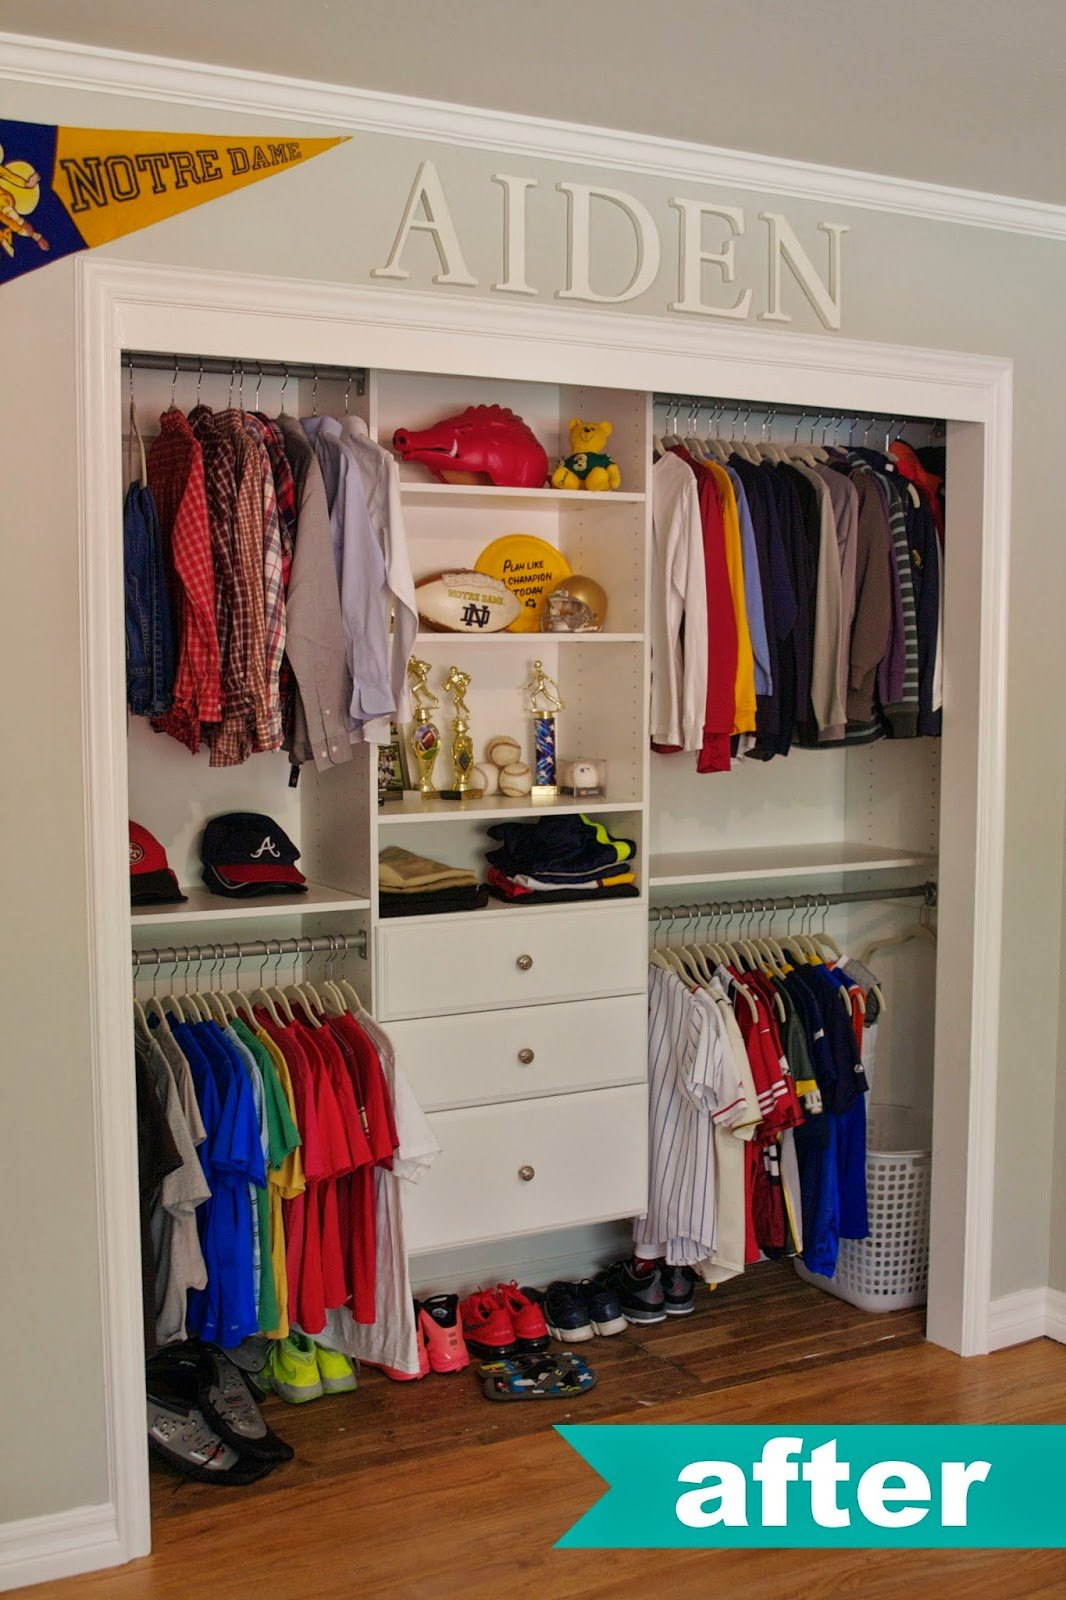 to fashiioncarpet inspire more ideas diy organizer design com dimensions walk small closet on in organization you and pin